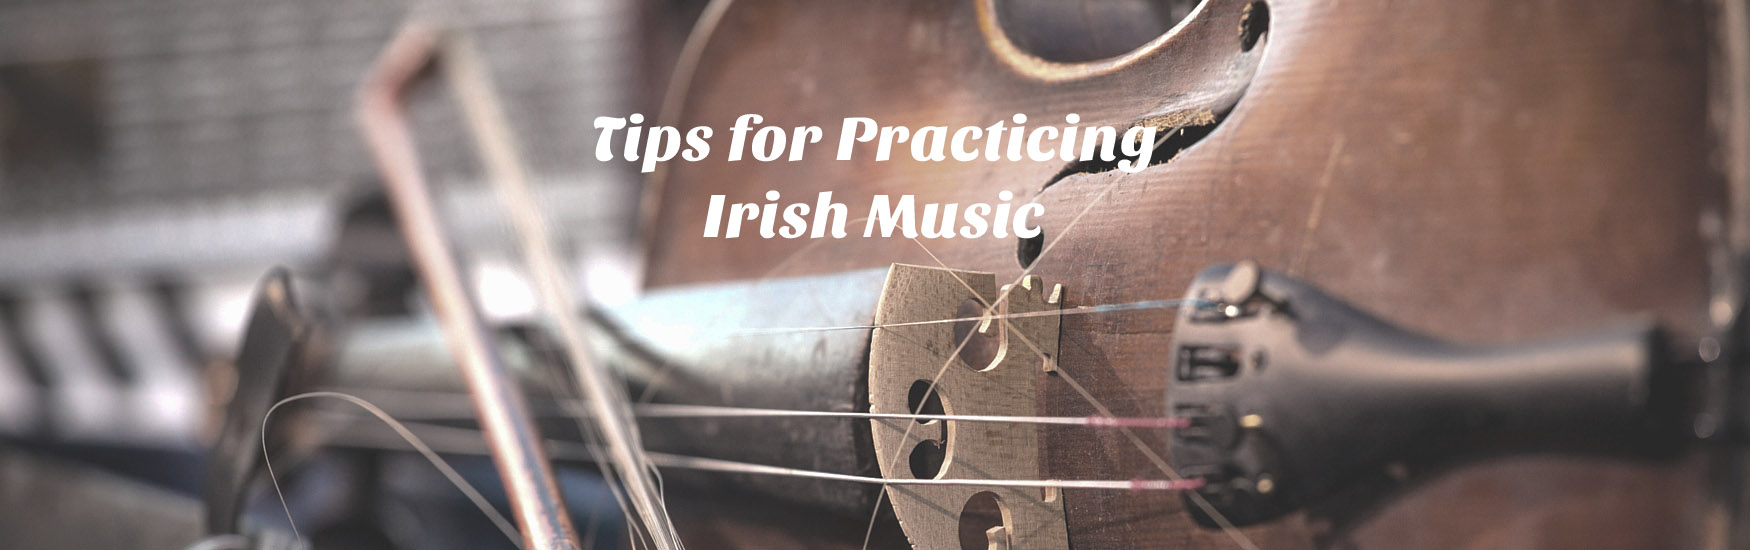 Tips for Practicing Irish Music - Milwaukee Irish Fest School of Music